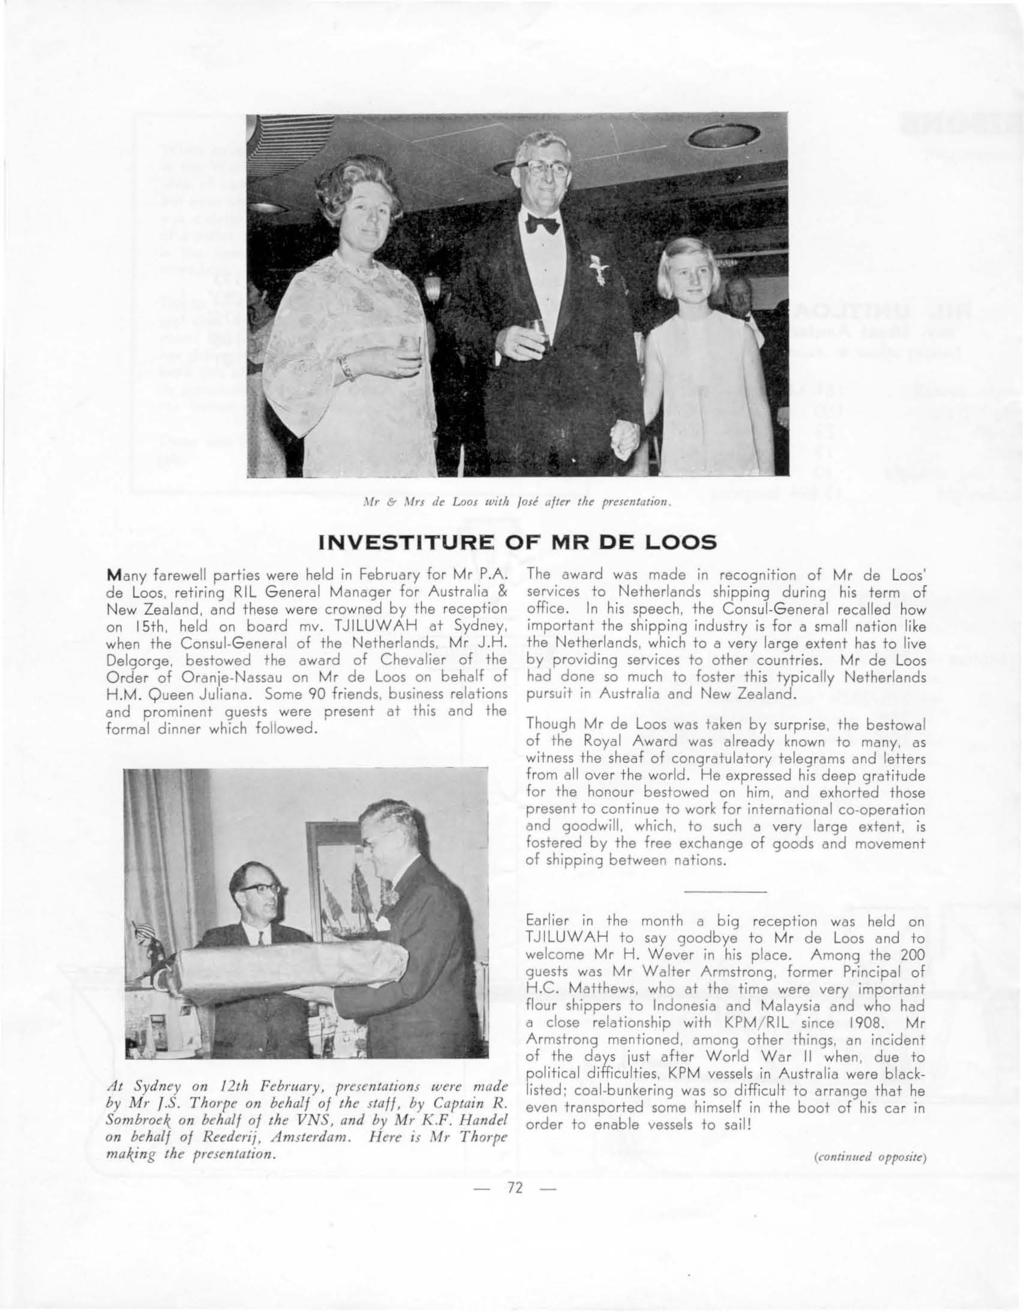 Mr 6- AIrs de Loos wi/i, Josi alter /lle preunla/ioll. INVESTITURE OF MR DE LOOS M any farewell parlies were held in February for Mr P.A. de Loos, reli ring RIL General Manager for Auslralia & New Zealand, end these were crowned by the reception on ISlh, held on boord mv.